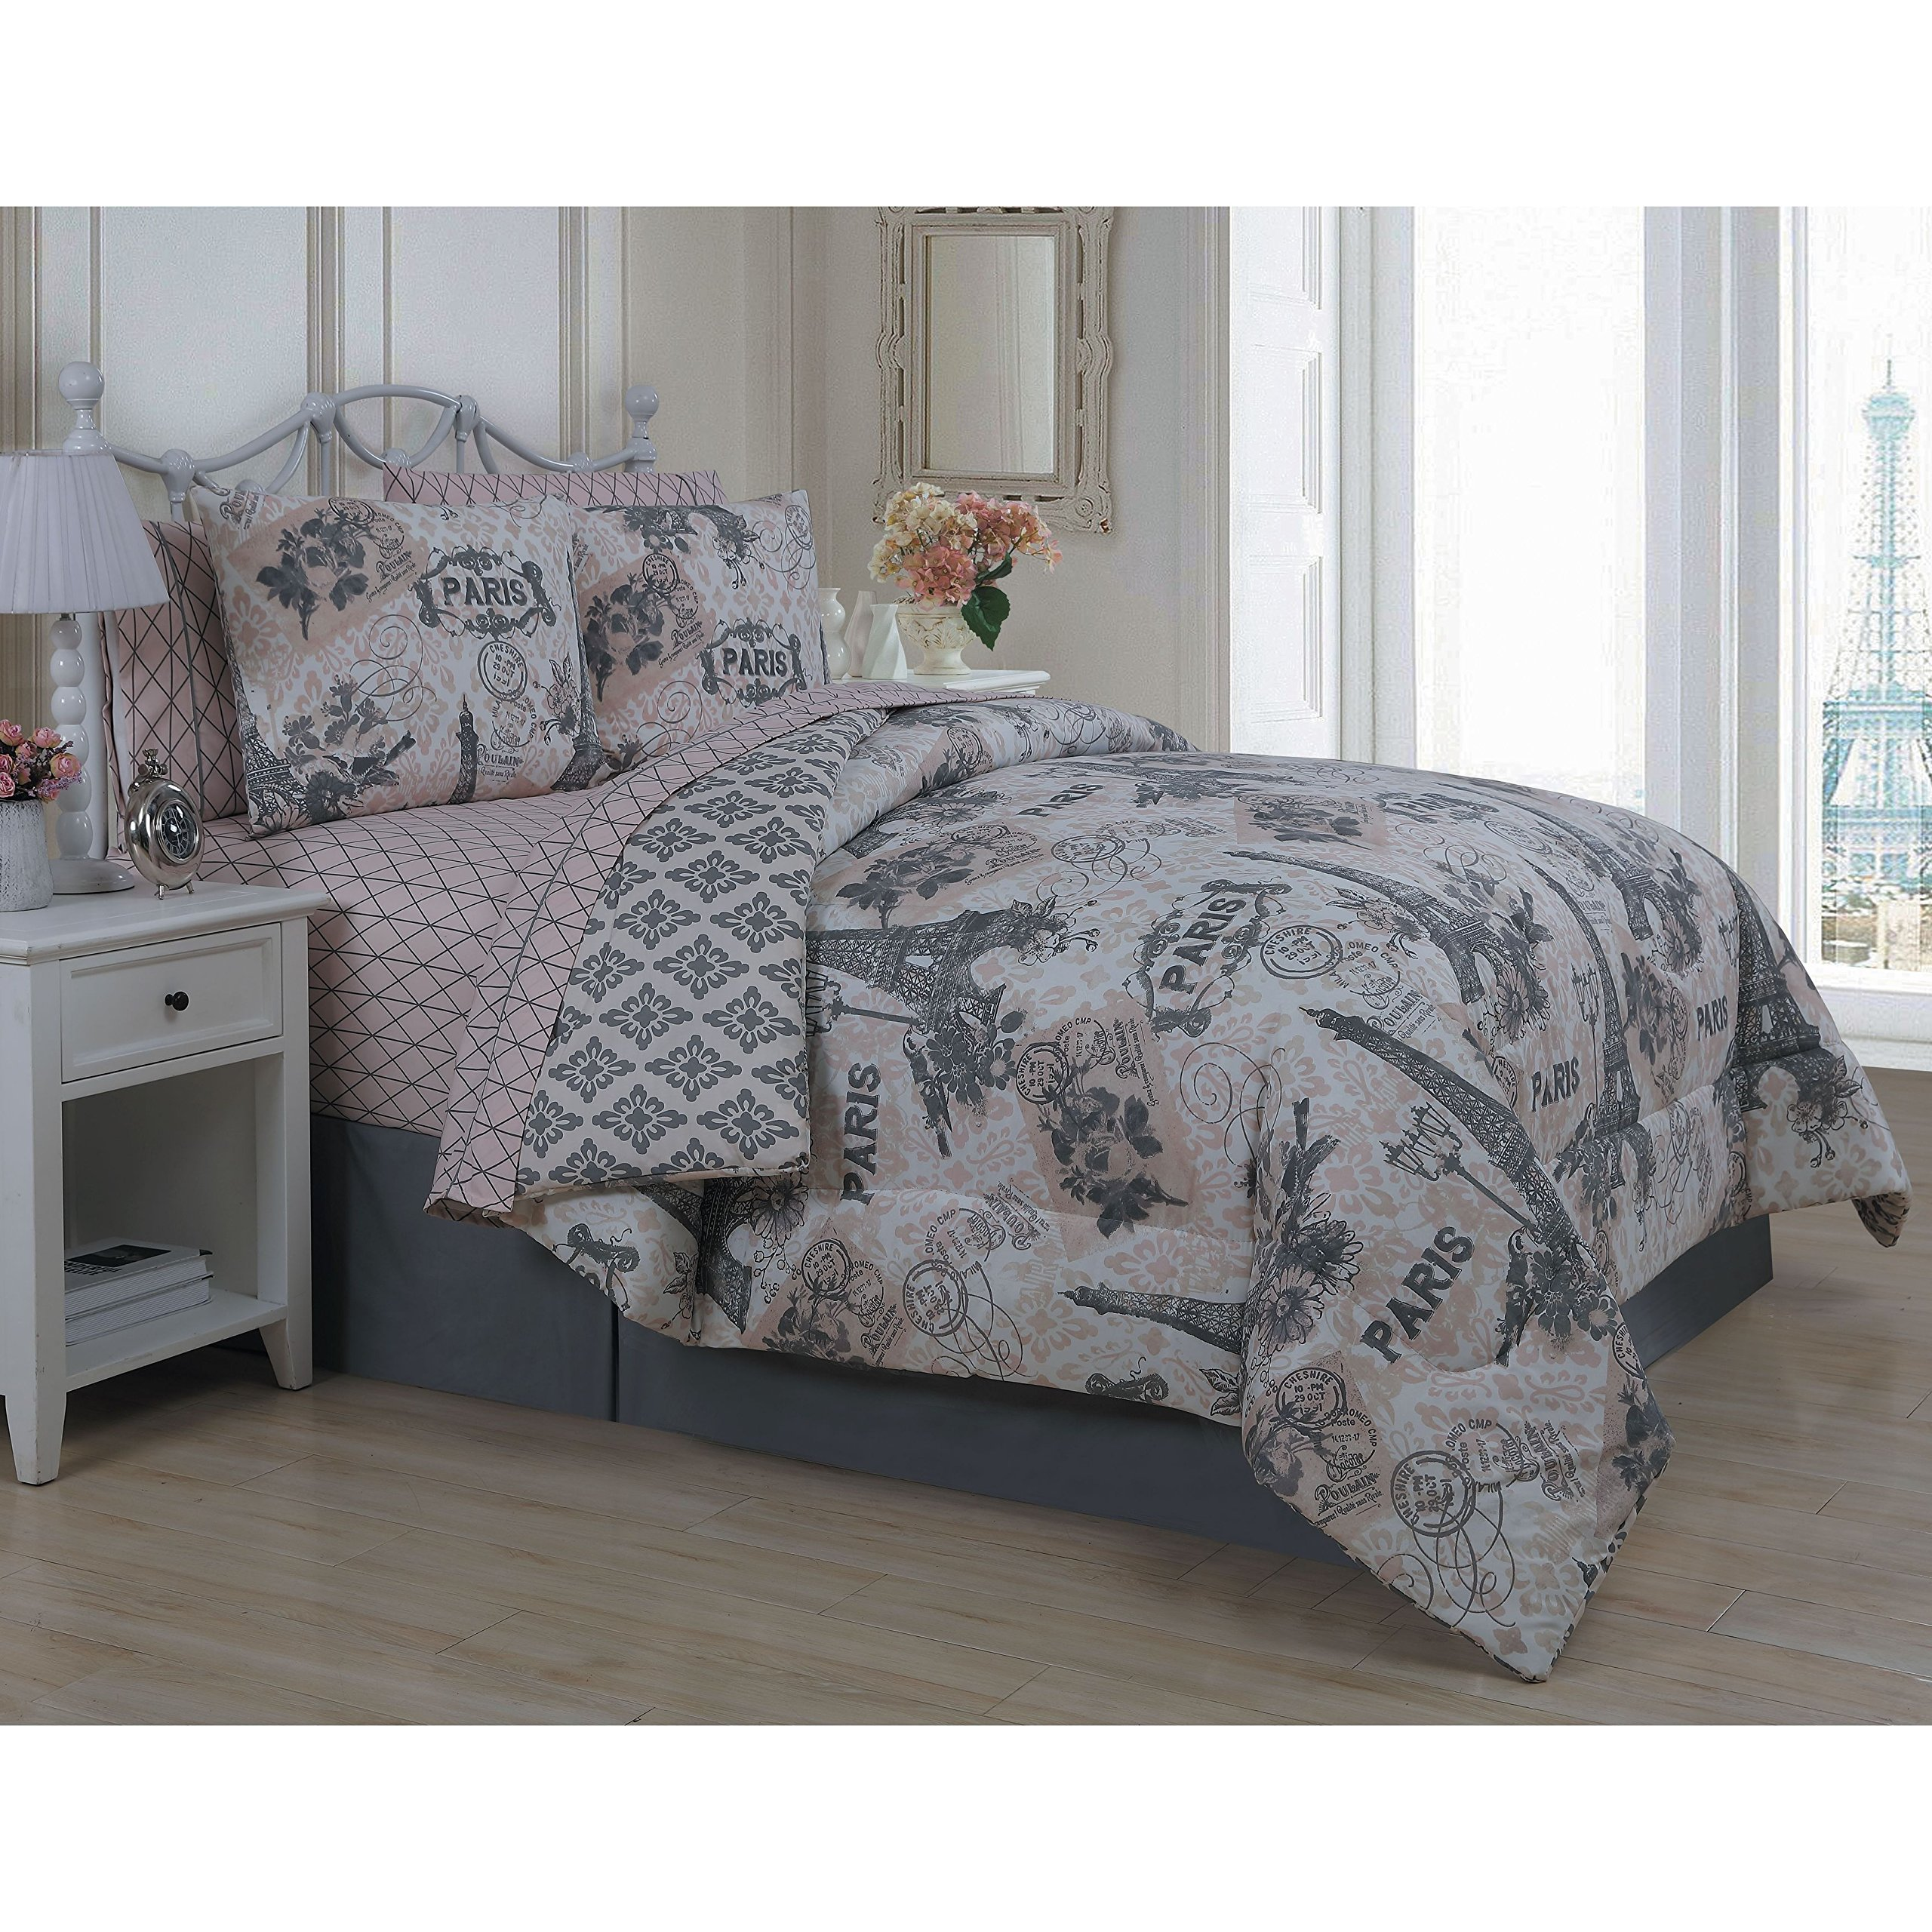 8 Piece Girls Paris Love Themed Comforter Set King Size, All Over Medallion Eiffel Tower Reversible Bedding, Multi Flowers France Inspire, Damask Patchwork Background Pattern Vibrant Colors Blush Pink